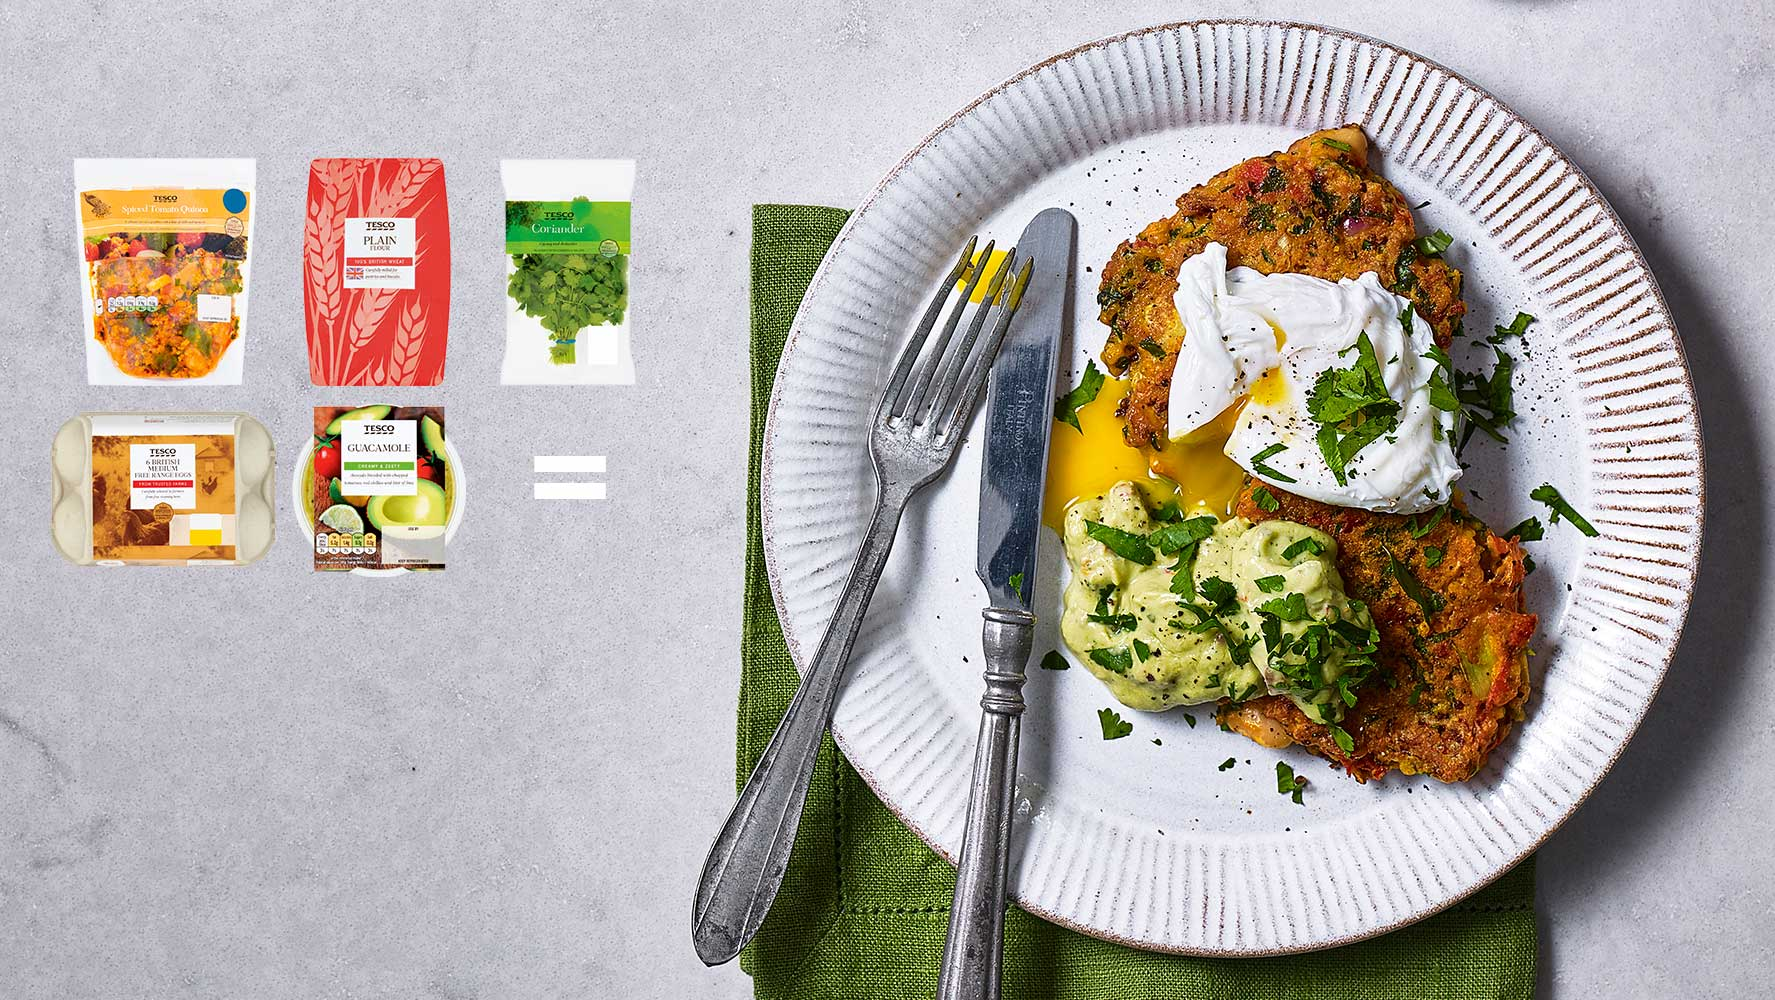 5-ingredient – Spiced vegetable fritters with poached egg